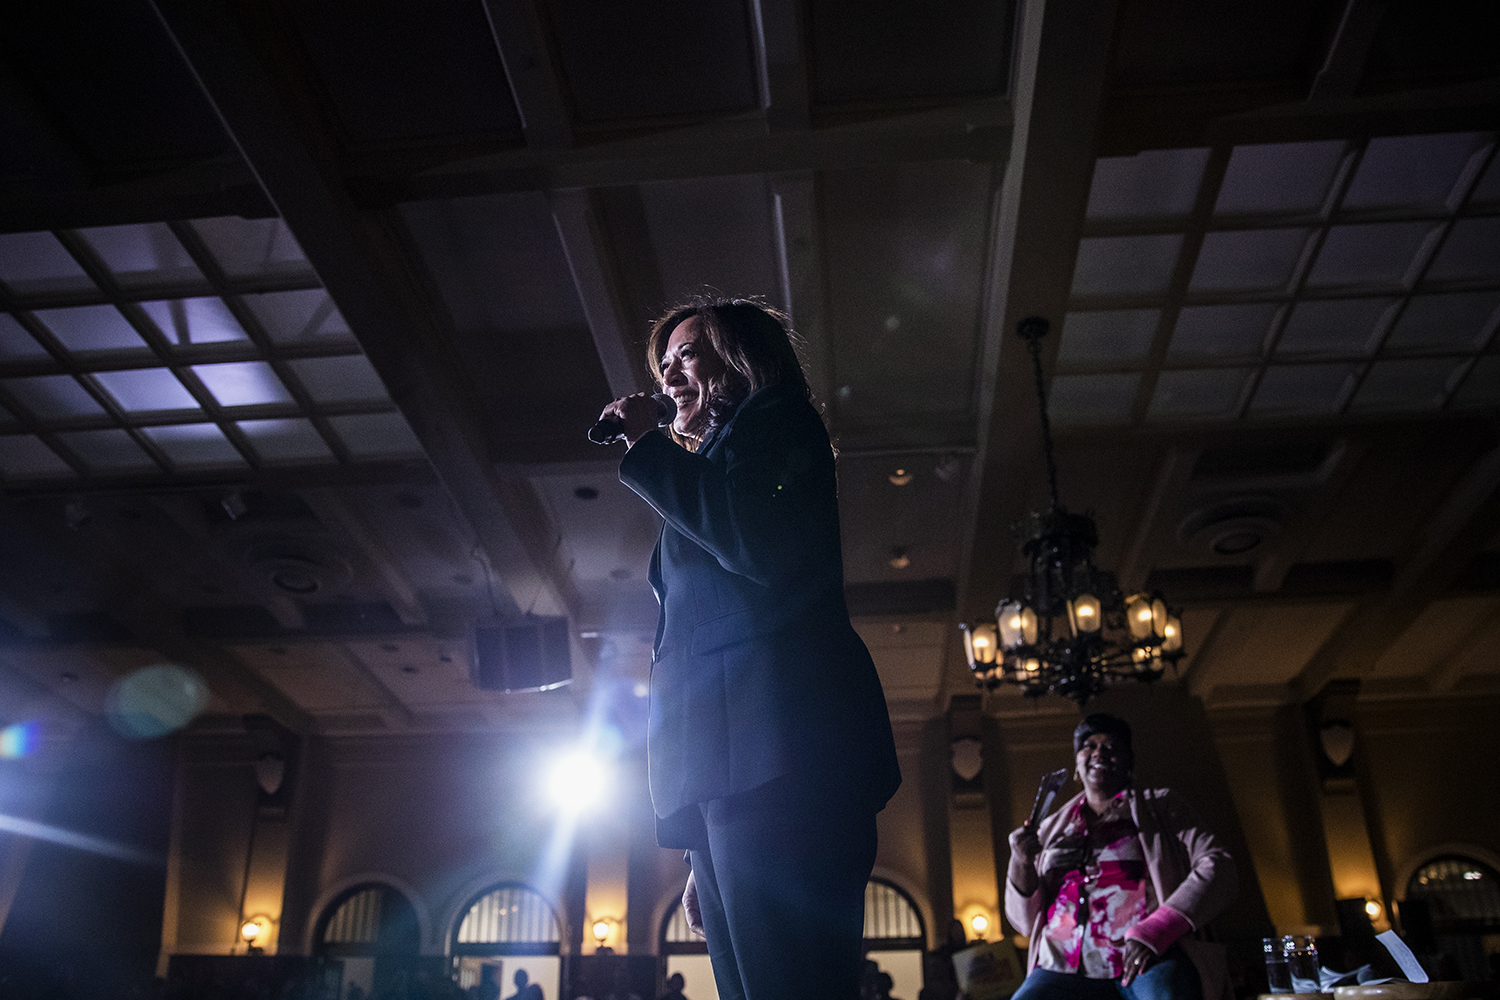 Sen. Kamala Harris, D-Calif., speaks during a town hall at the IMU on Wednesday, April 10, 2019. Harris is running for president in the 2020 election. (Katina Zentz/The Daily Iowan)